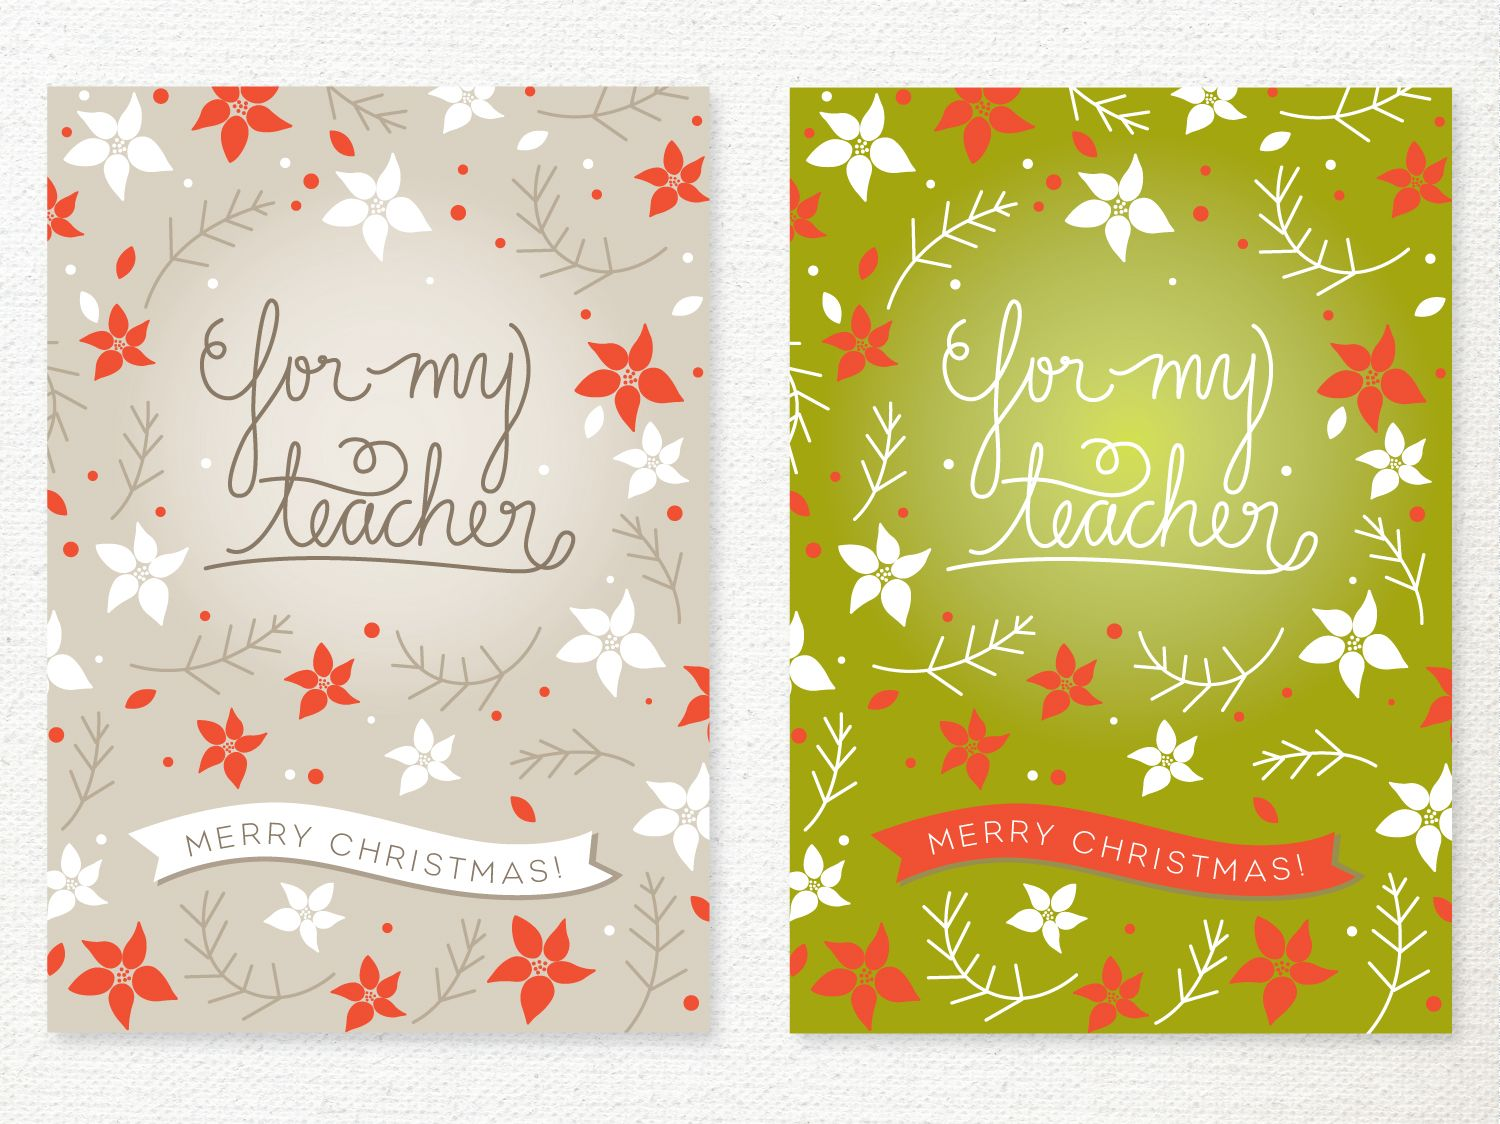 lemon squeezy: Day 11: A Card for Your Teacher | Christmas Vintage ...